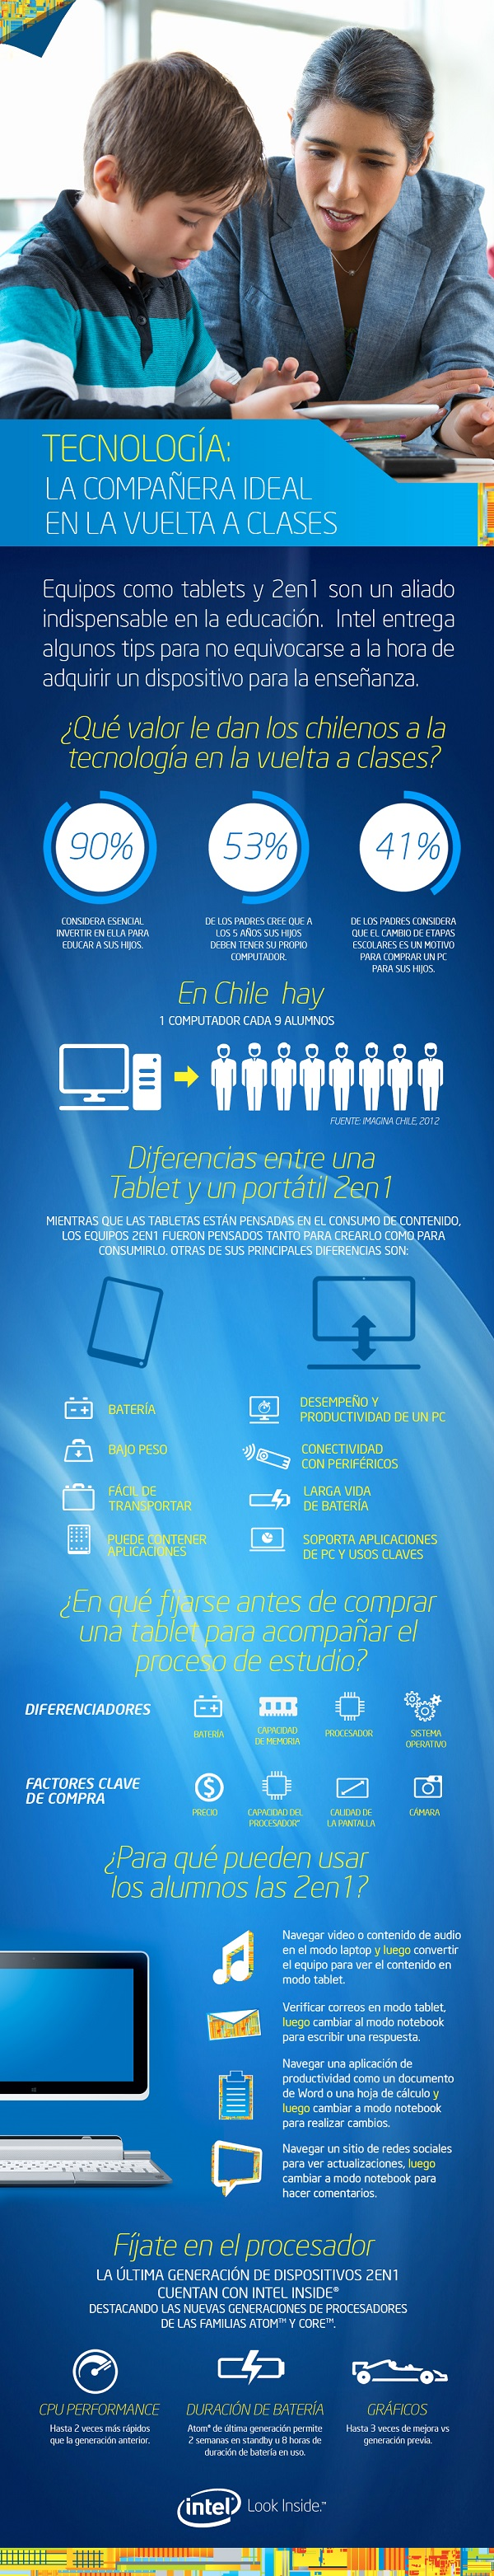 intel-clases-chile